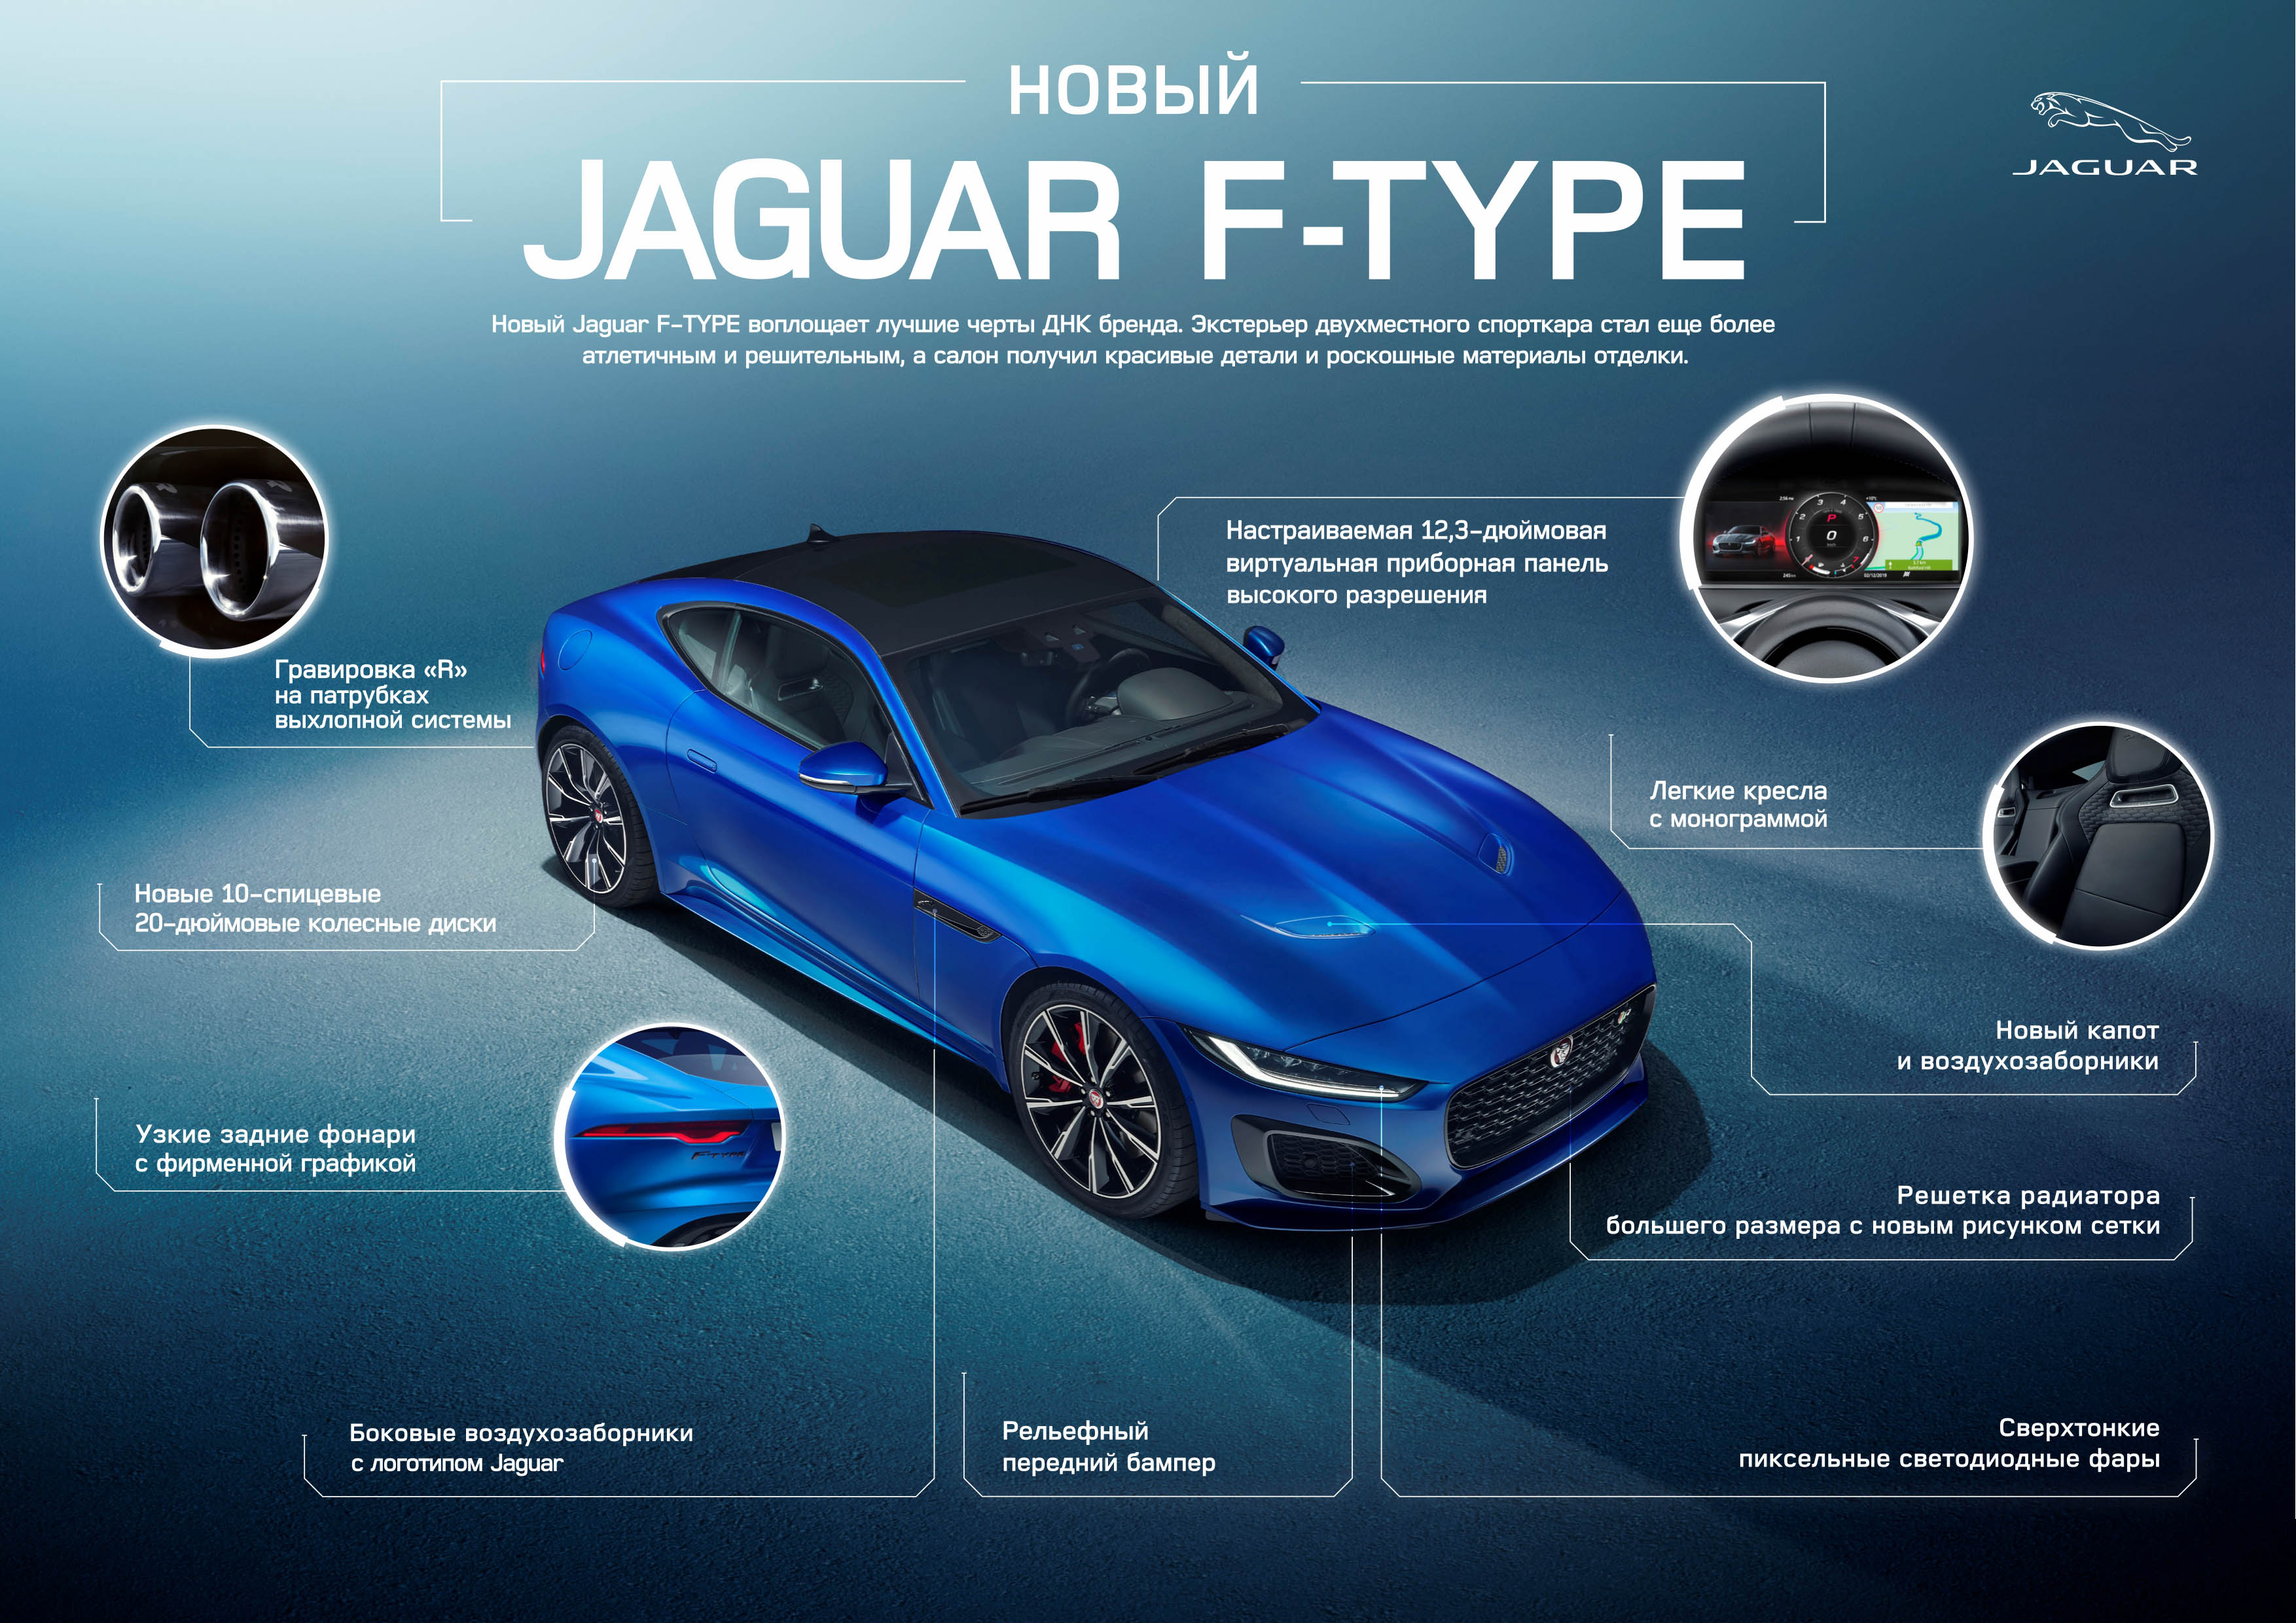 Jaguar F-TYPE Design